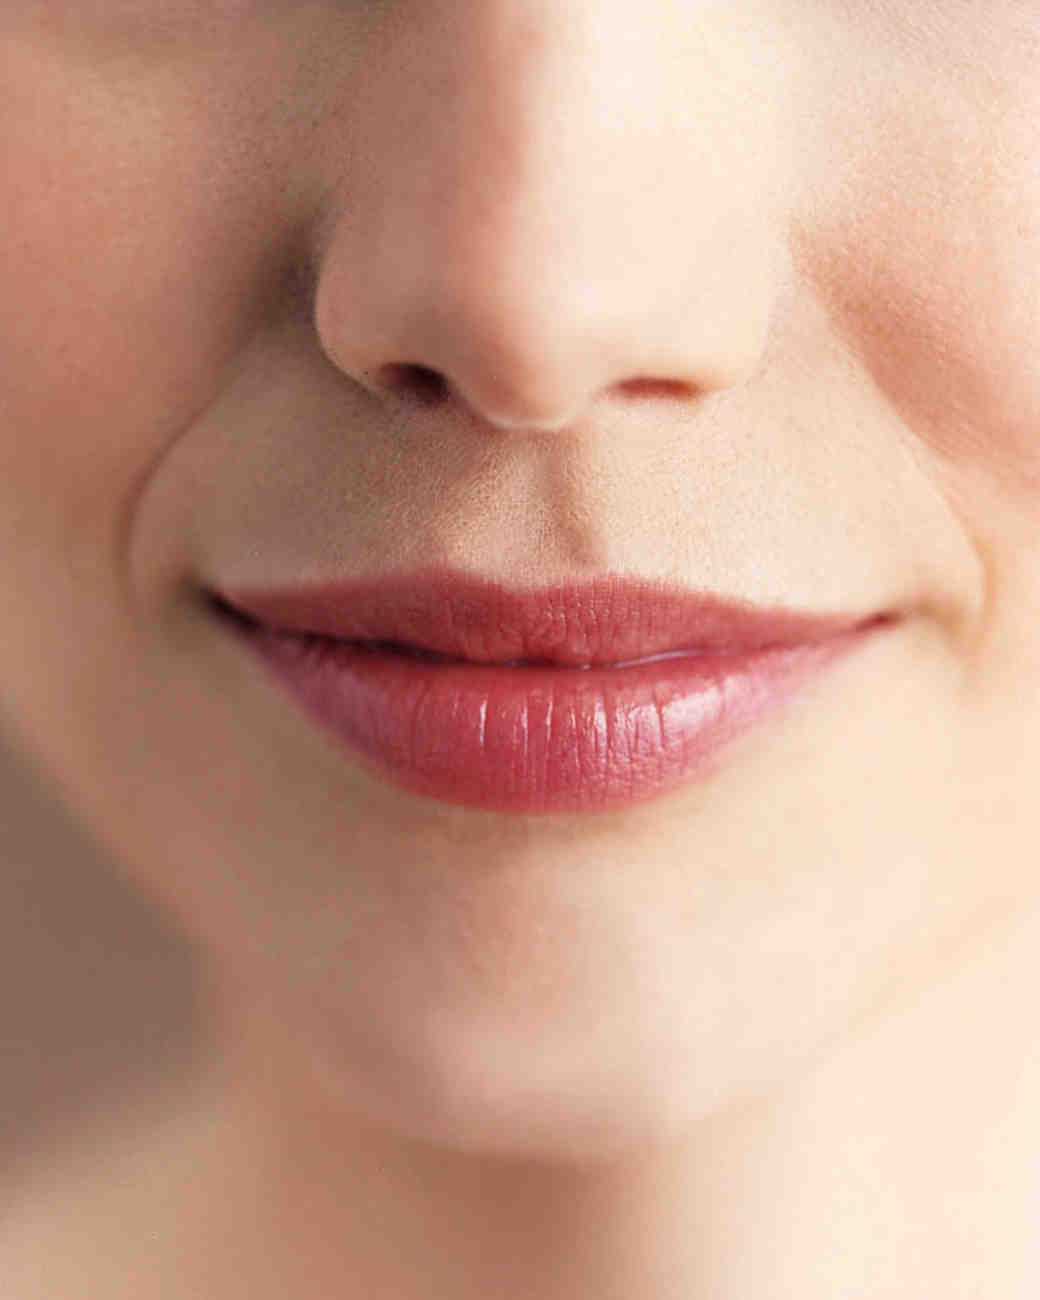 bc-smile-lips-7-mb0208beauty3.jpg